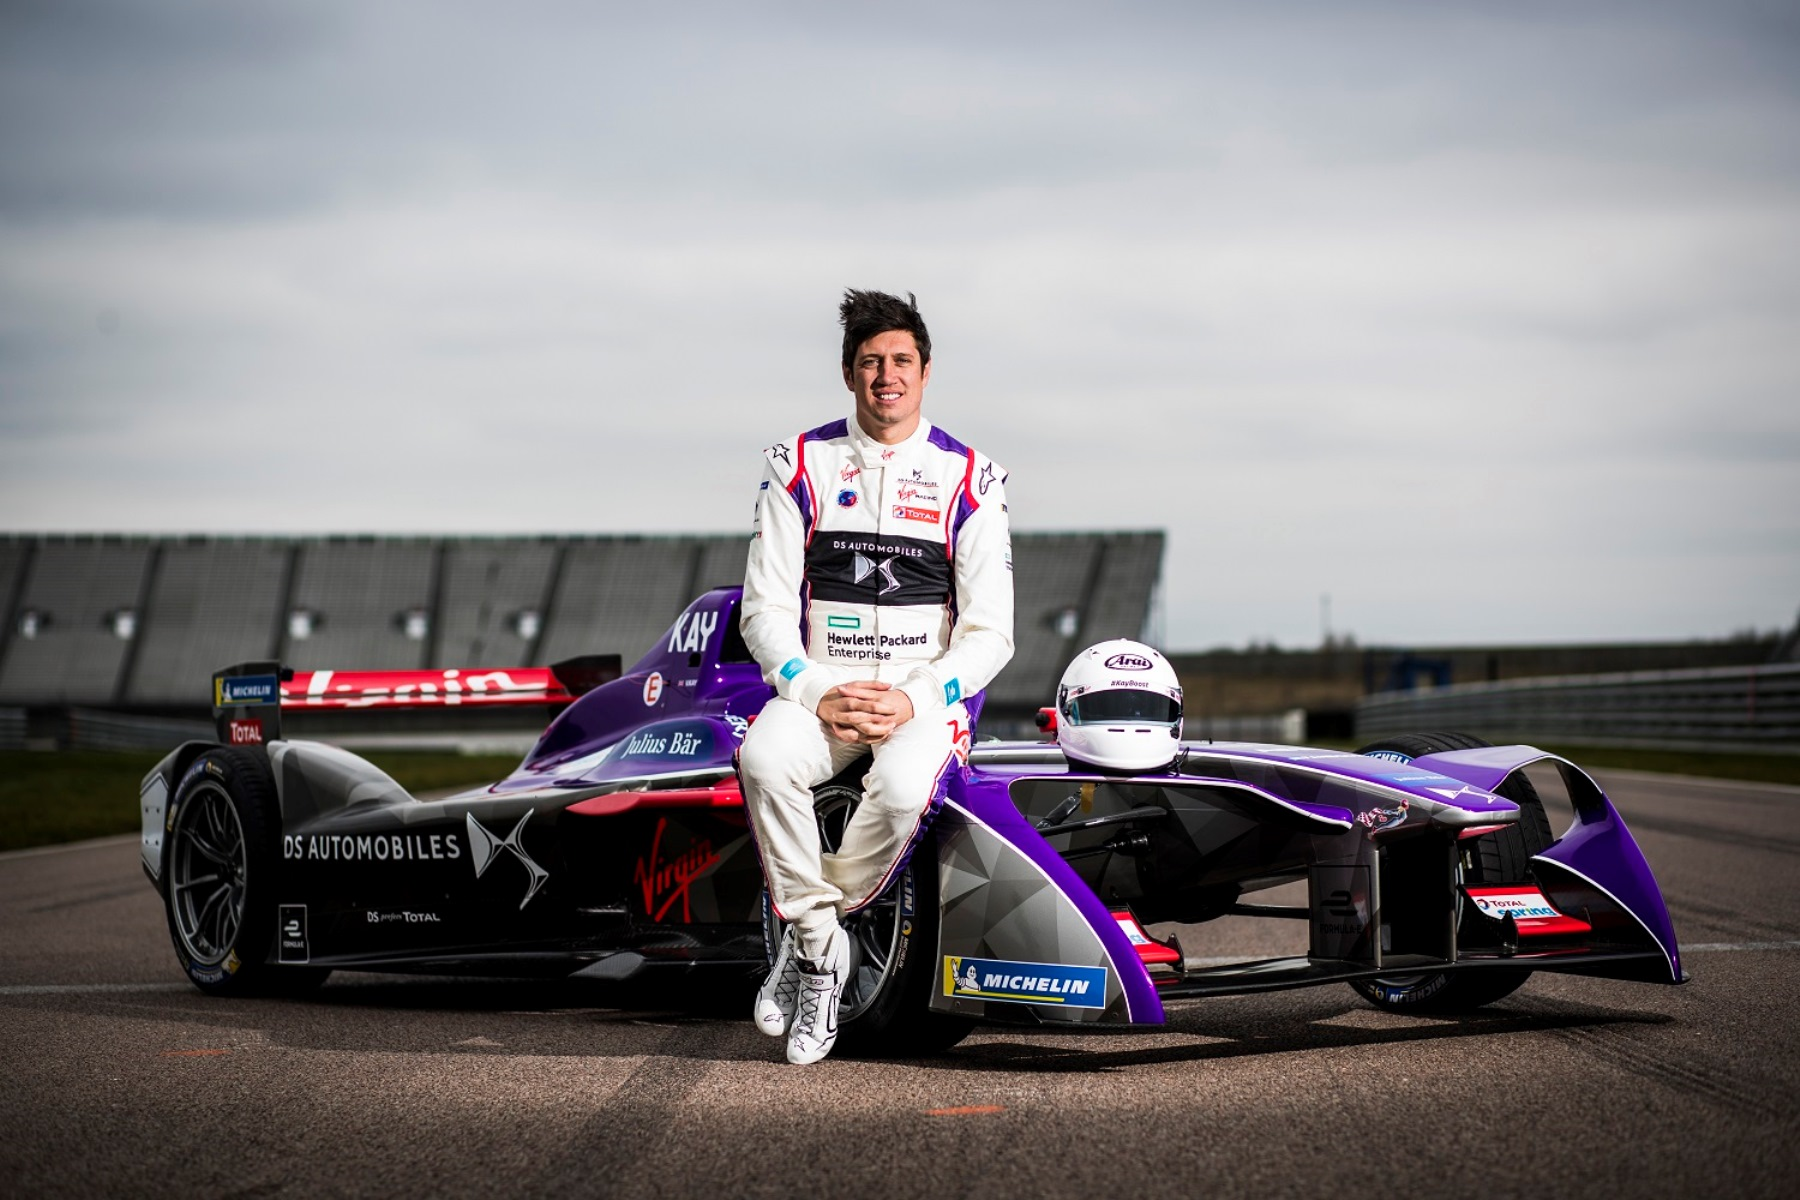 Vernon Kay is a TV star driving a Formula E car